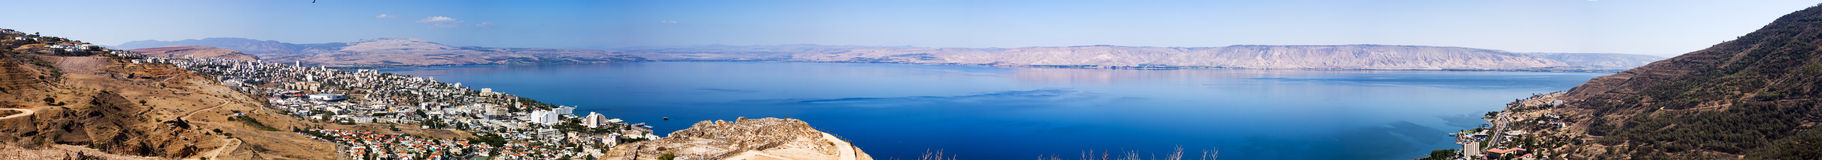 Tiberias Royalty Free Stock Image